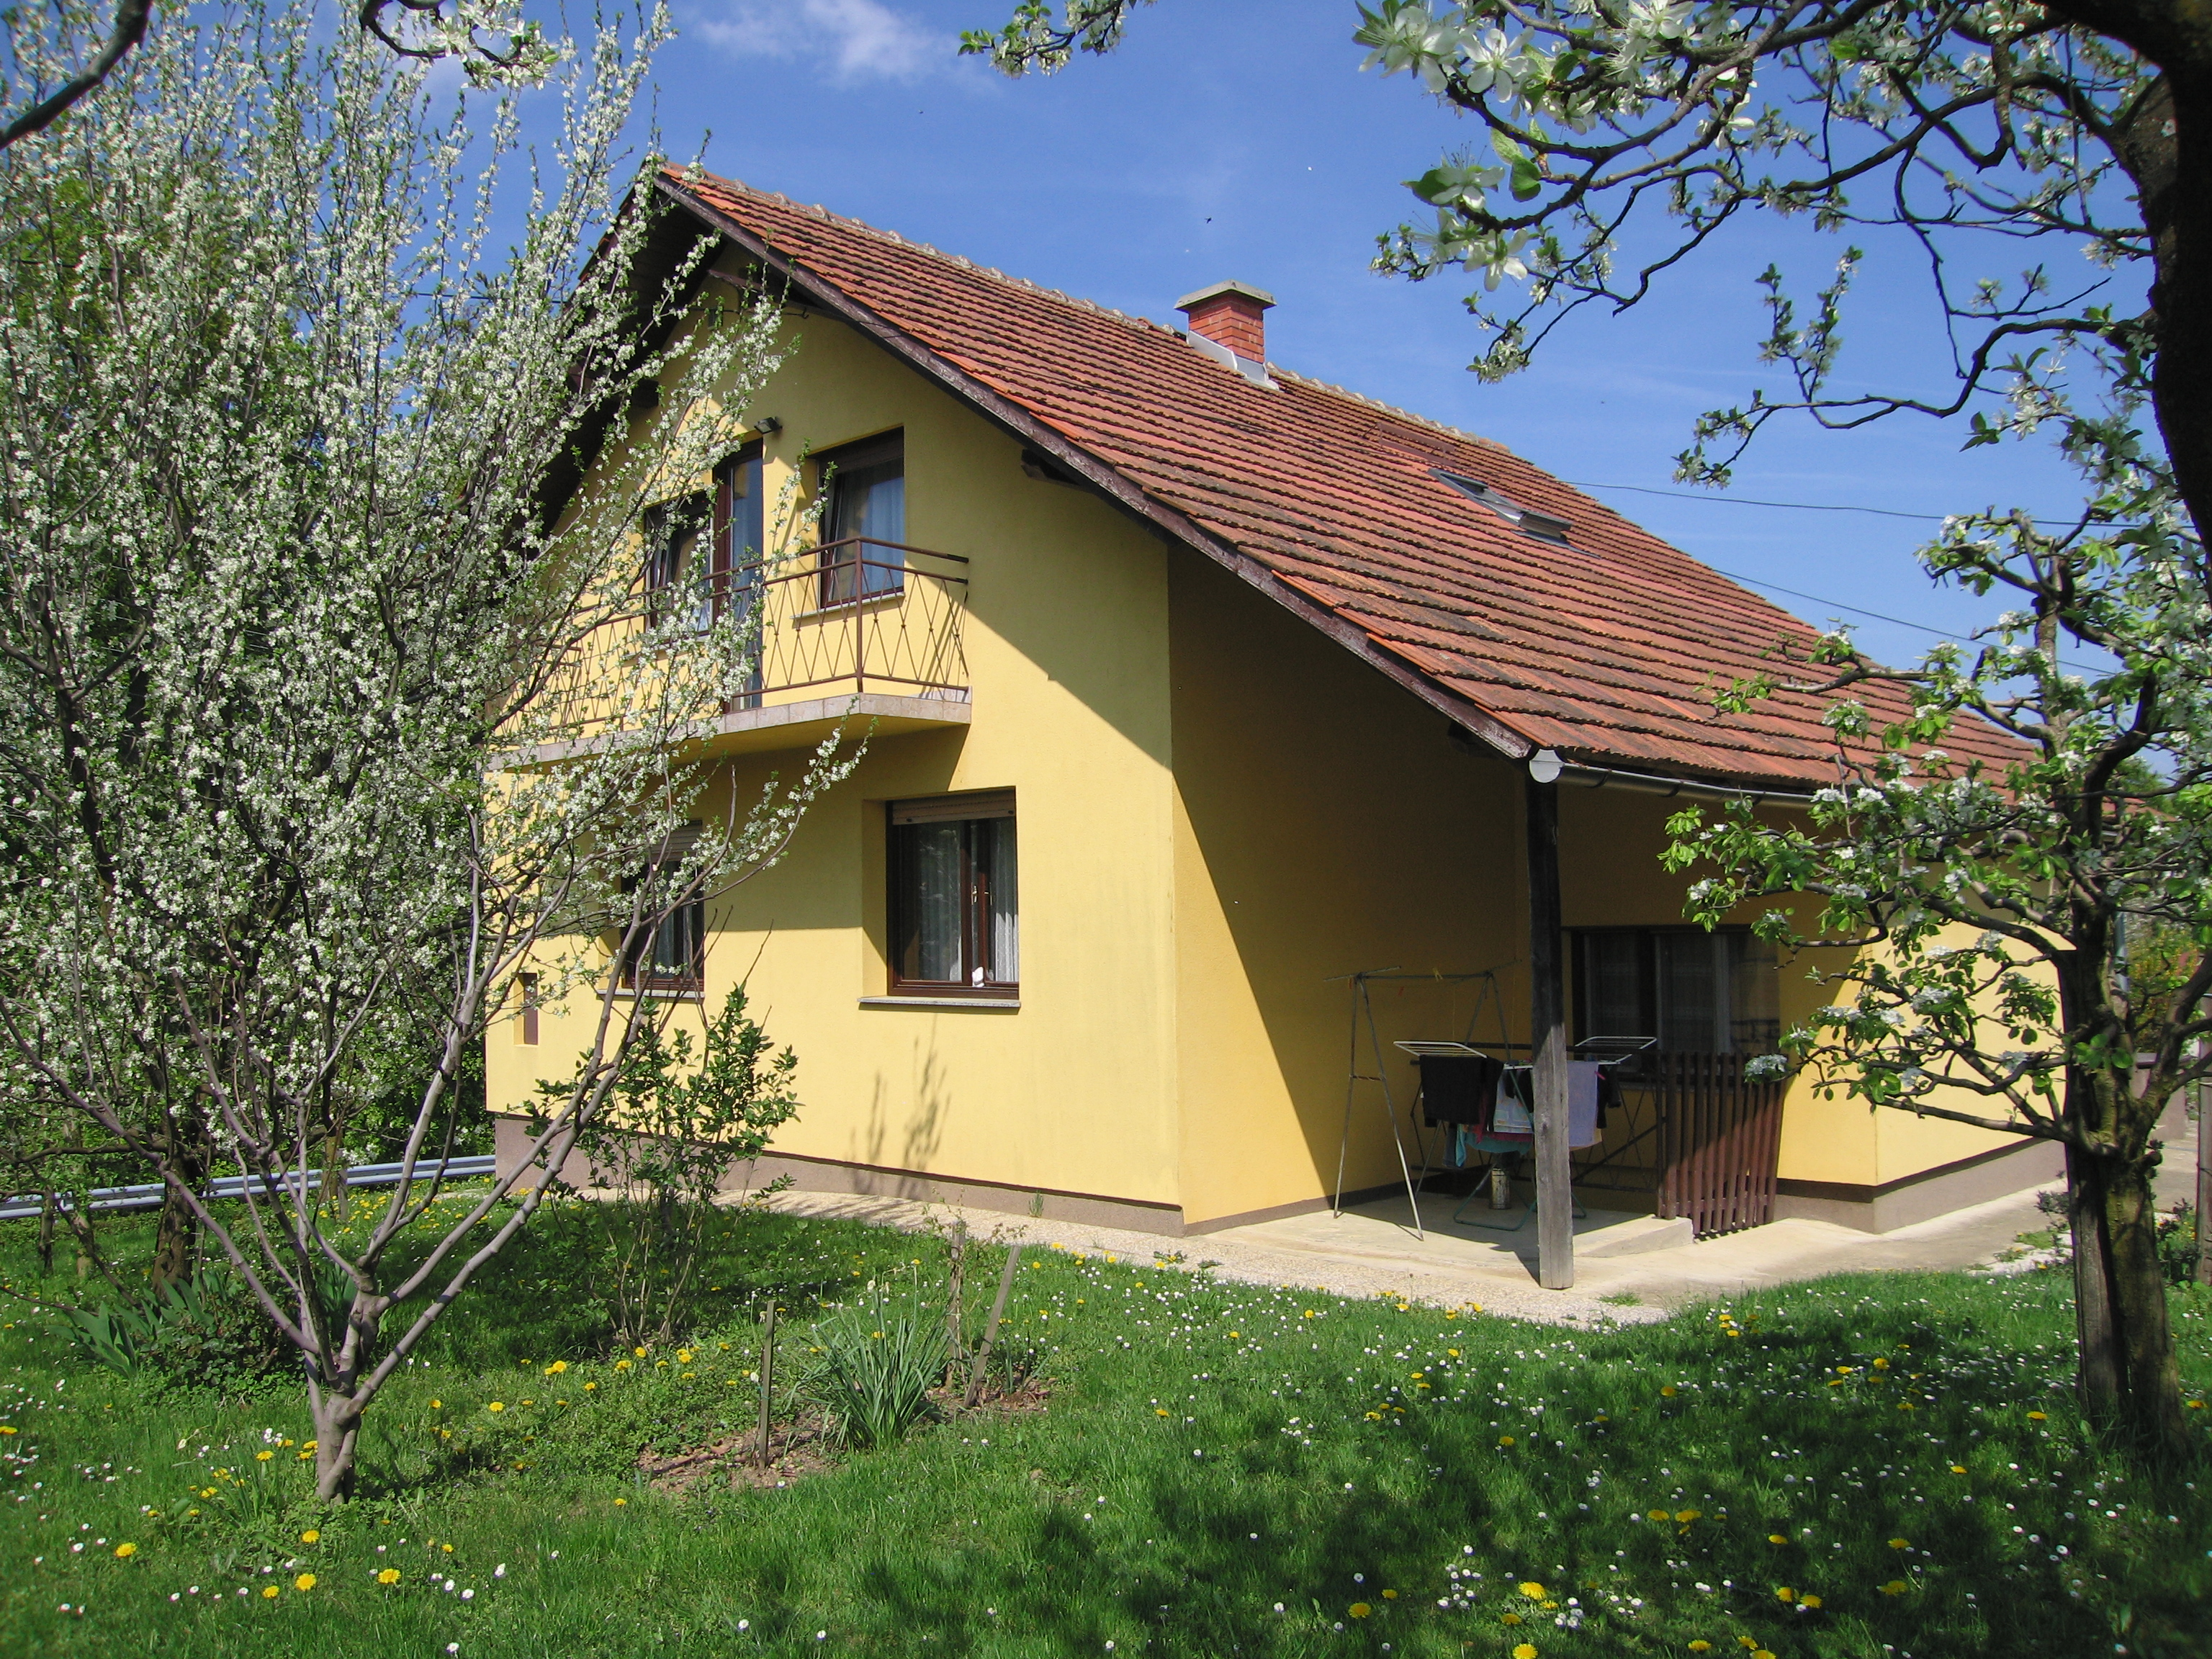 Small farm for sale near the town Ljutomer